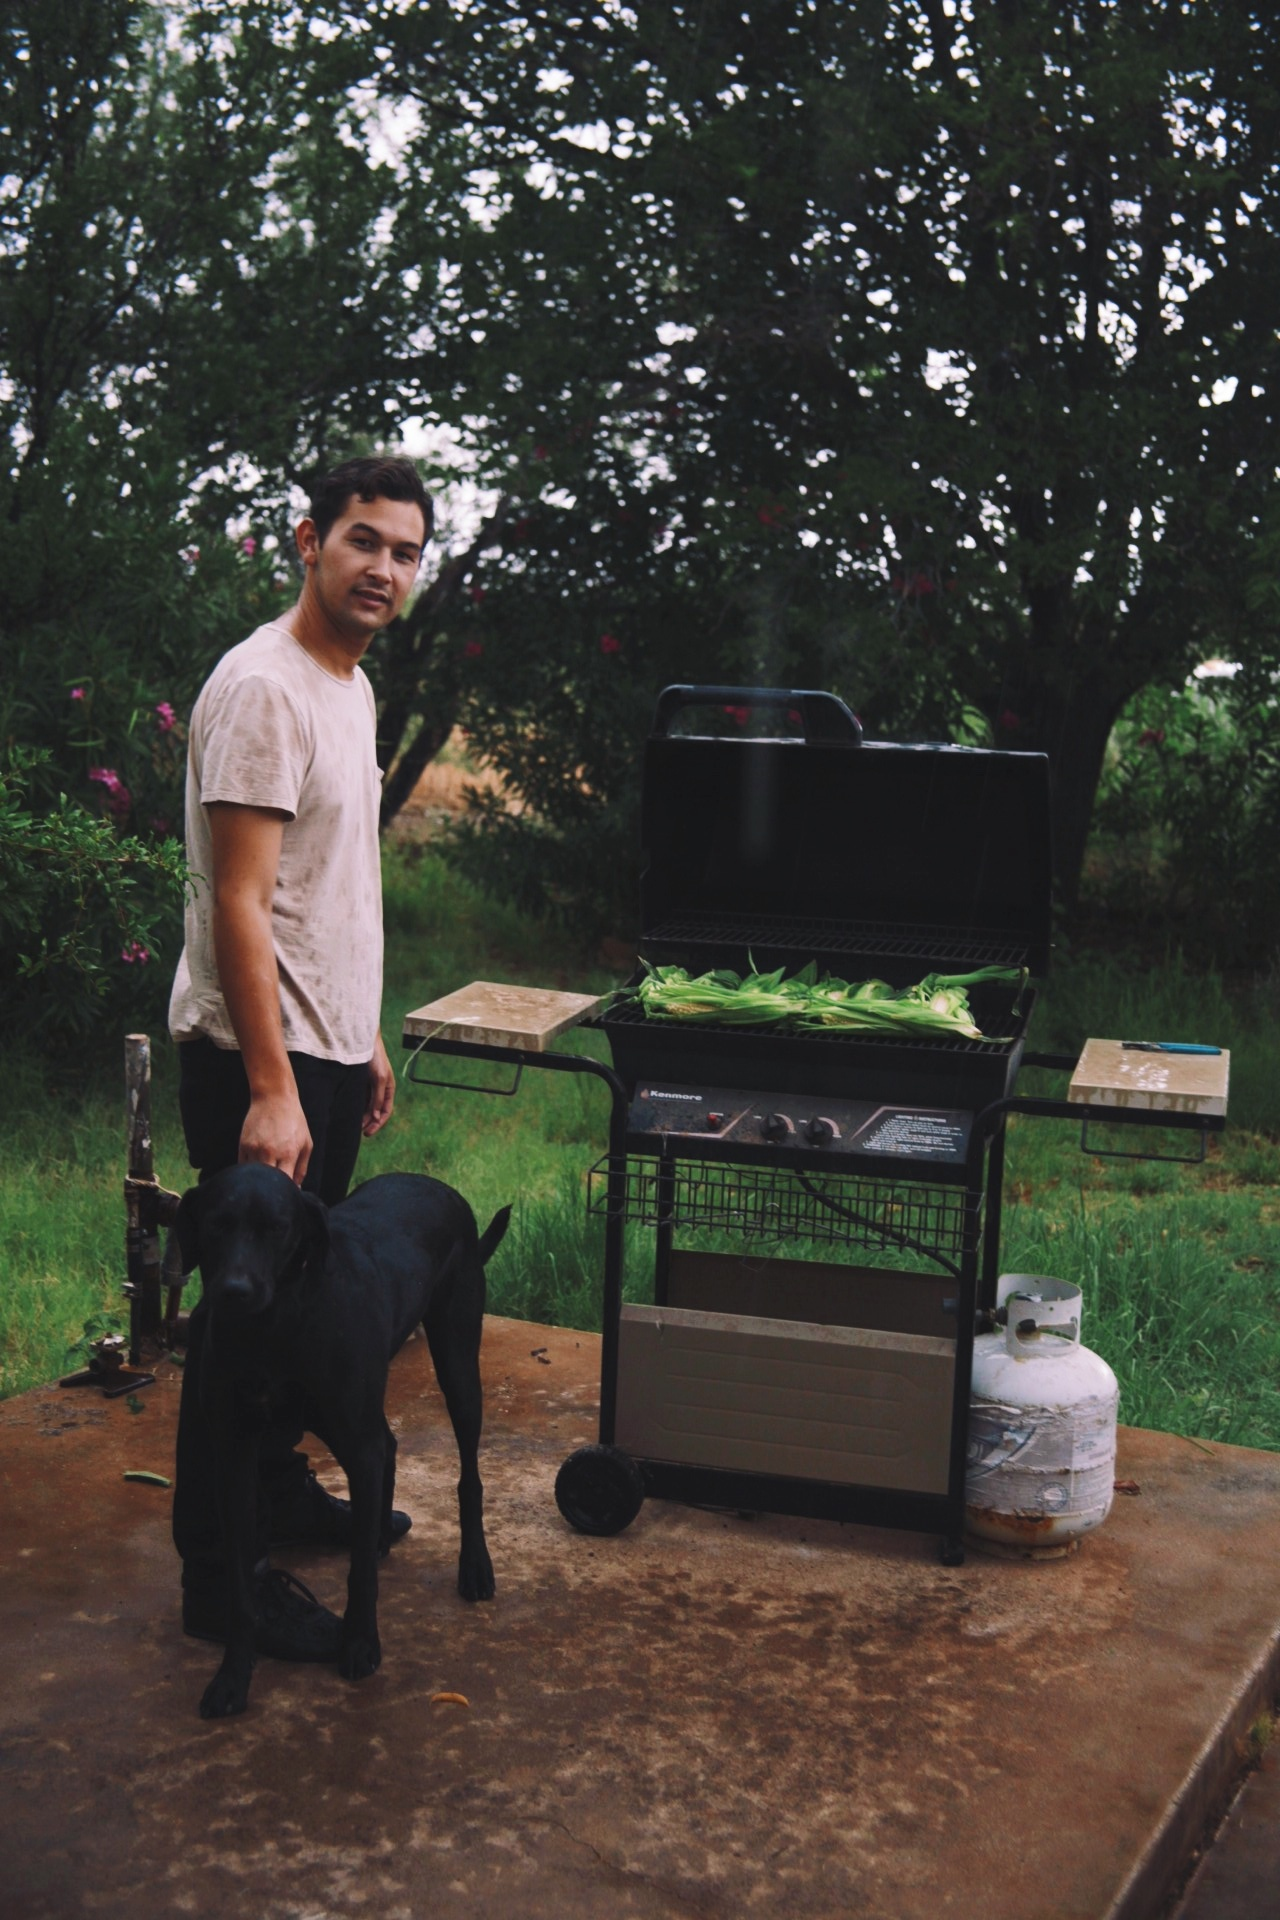 BBQing in the rain with my dog Chuck.